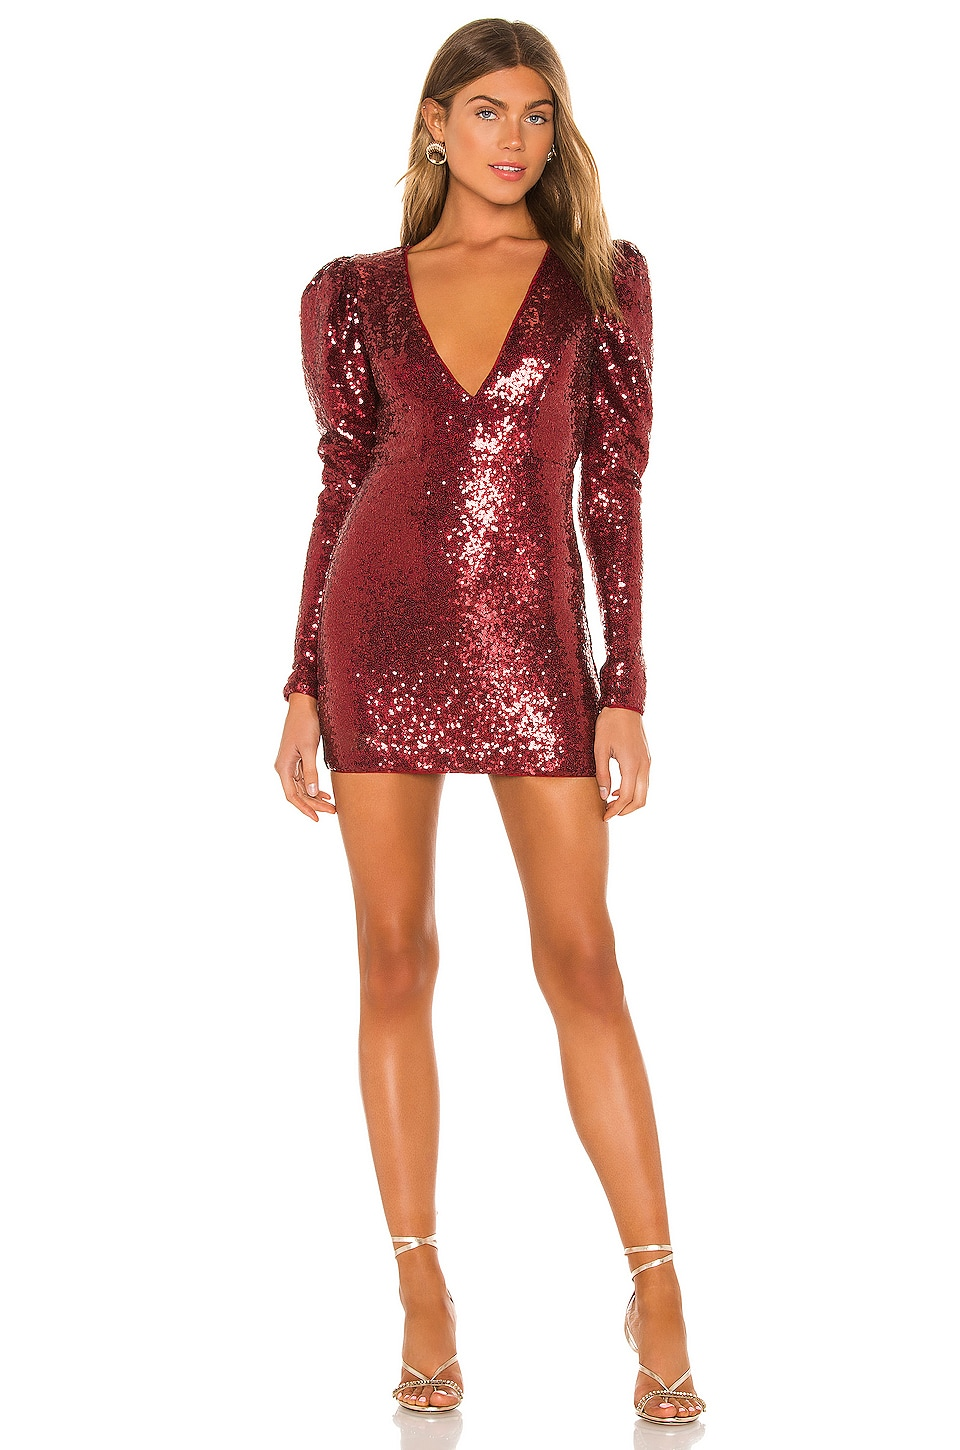 Michael Costello x REVOLVE Harry Mini Dress in Maroon